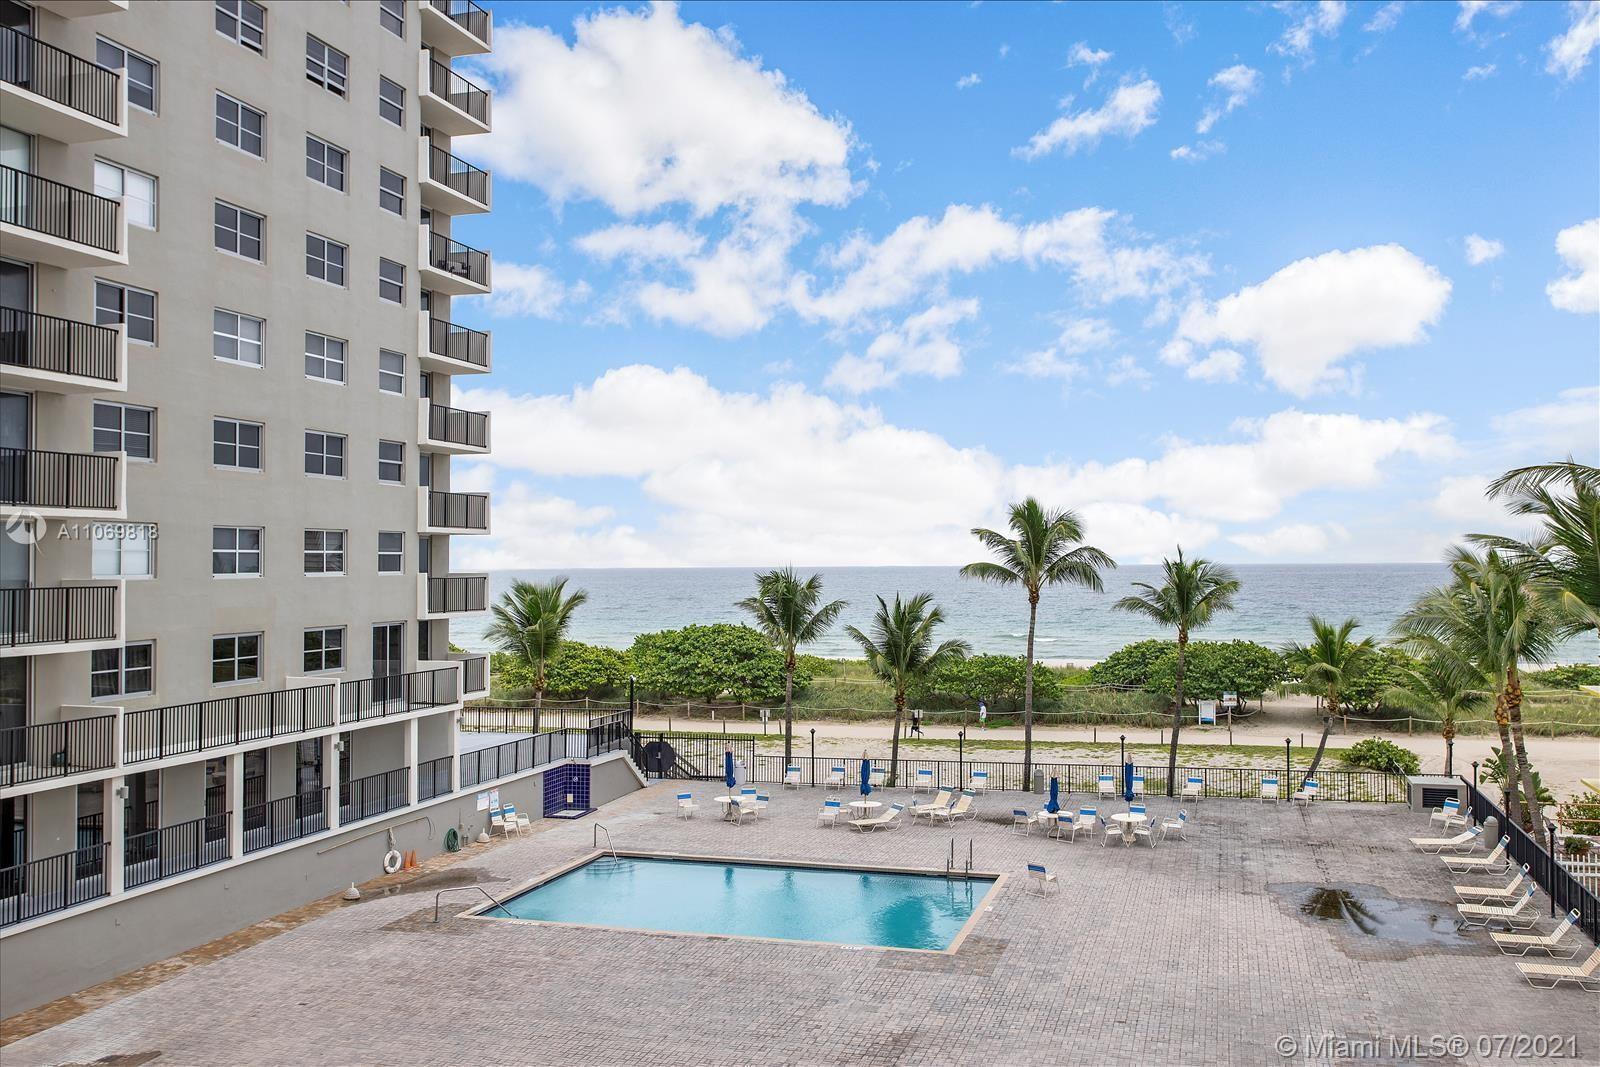 Direct ocean views from this updated unit at the Manatee condo. This corner unit is the largest floo